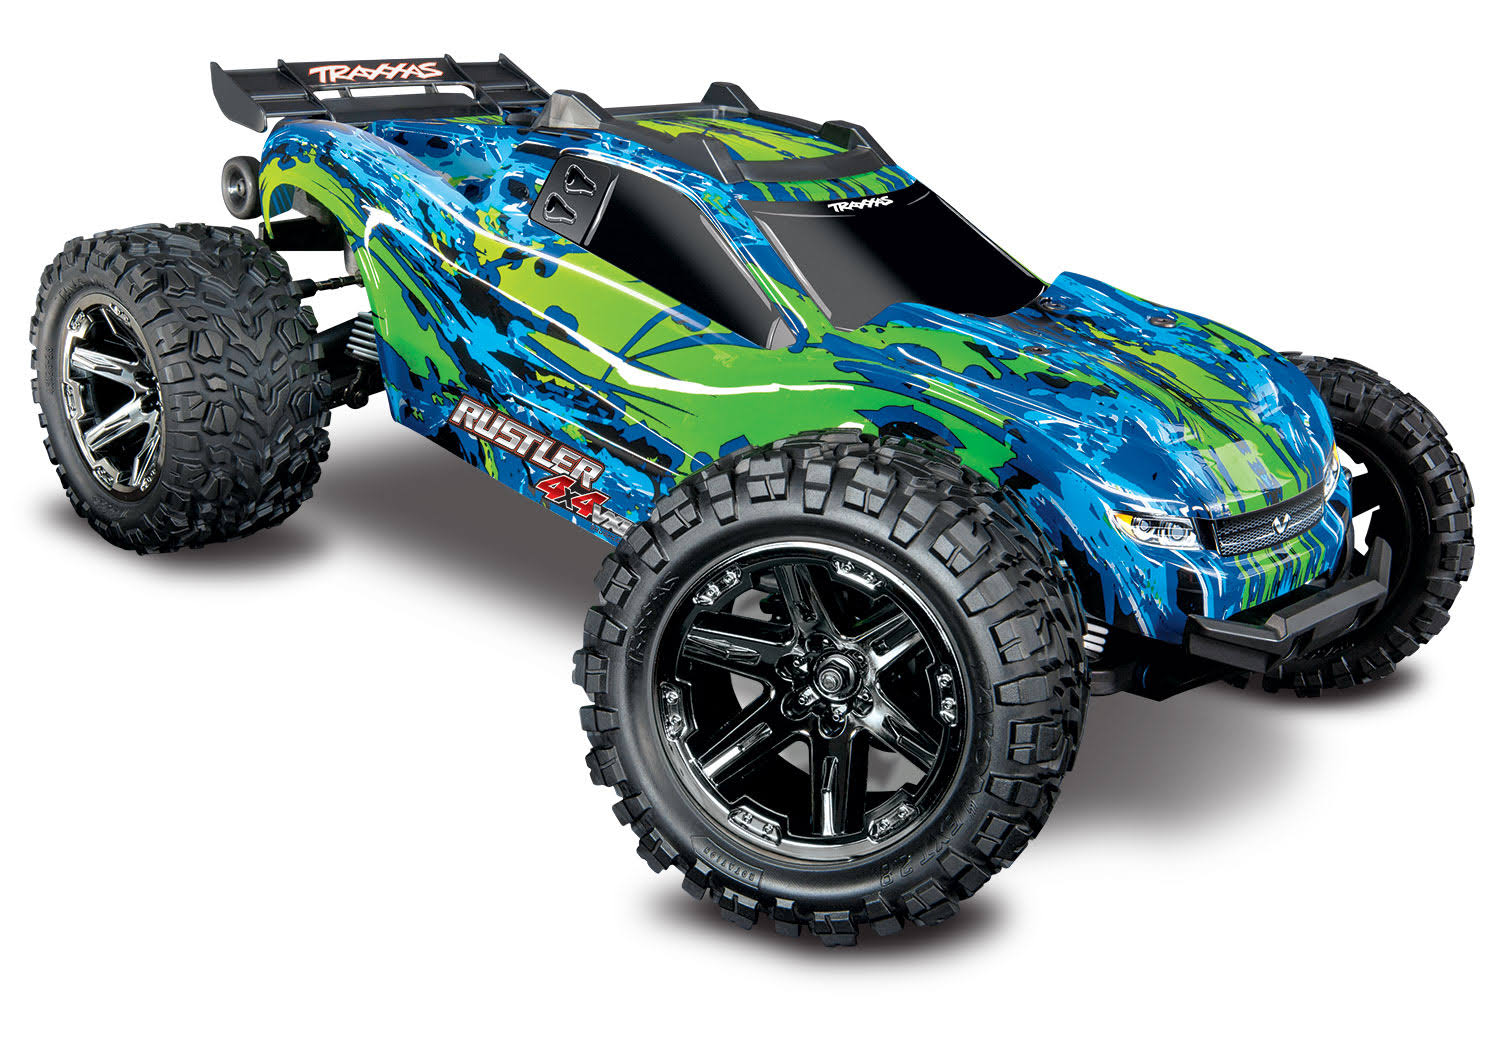 Traxxas Rustler 4x4 VXL Electric RTR Stadium Truck RC Model Kit - 1:10 Scale